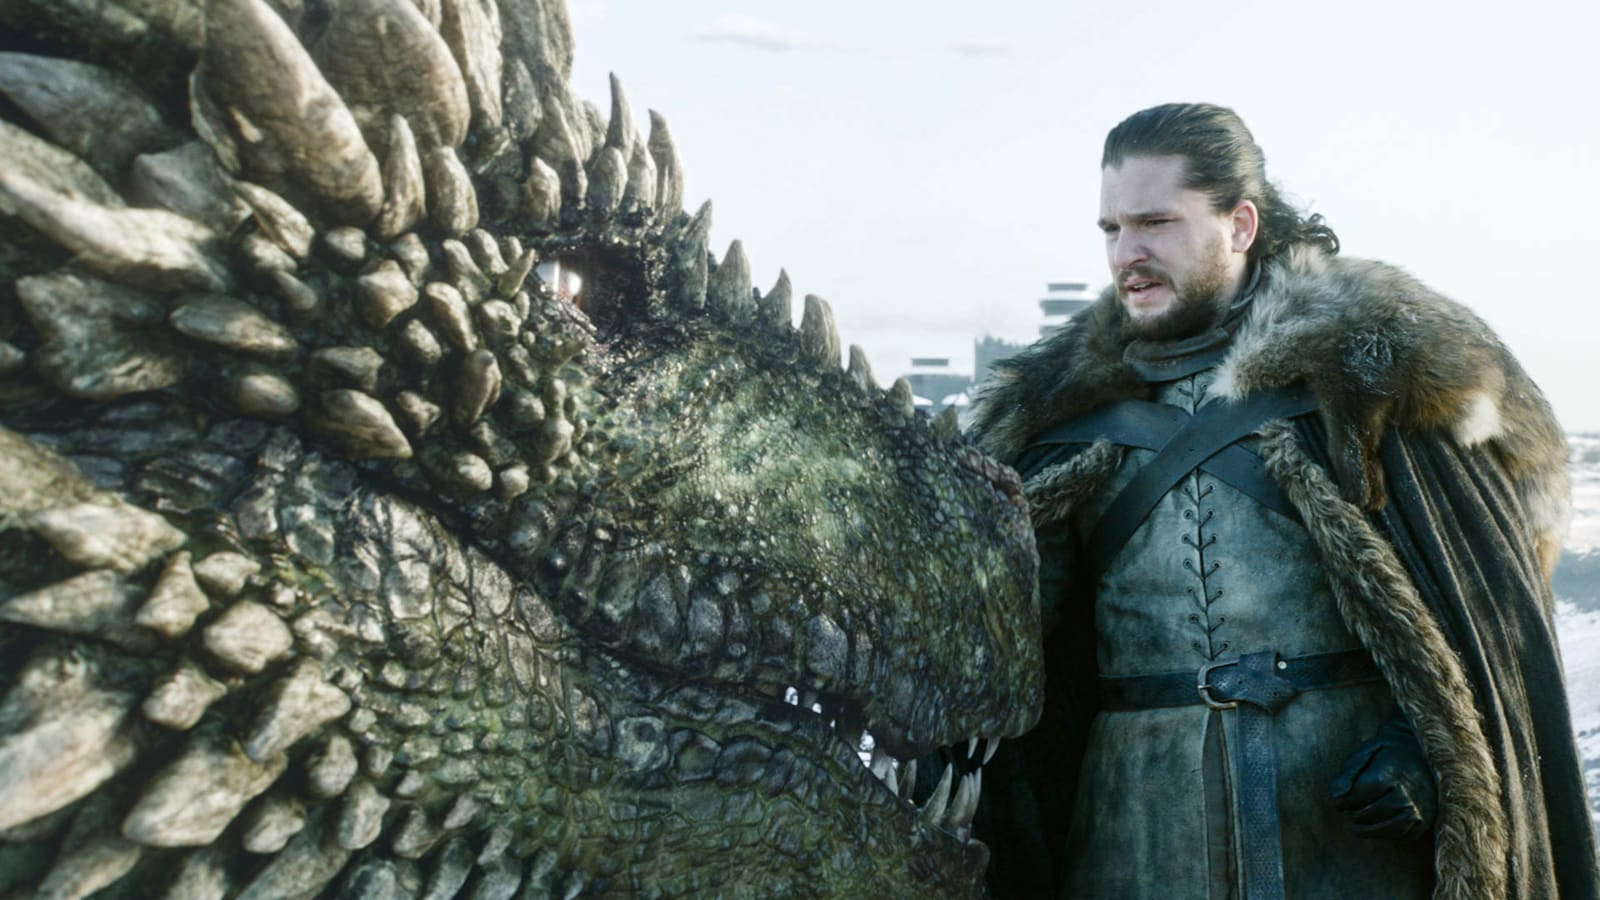 'Game of Thrones' premiere was pirated nearly 55 million times in one day